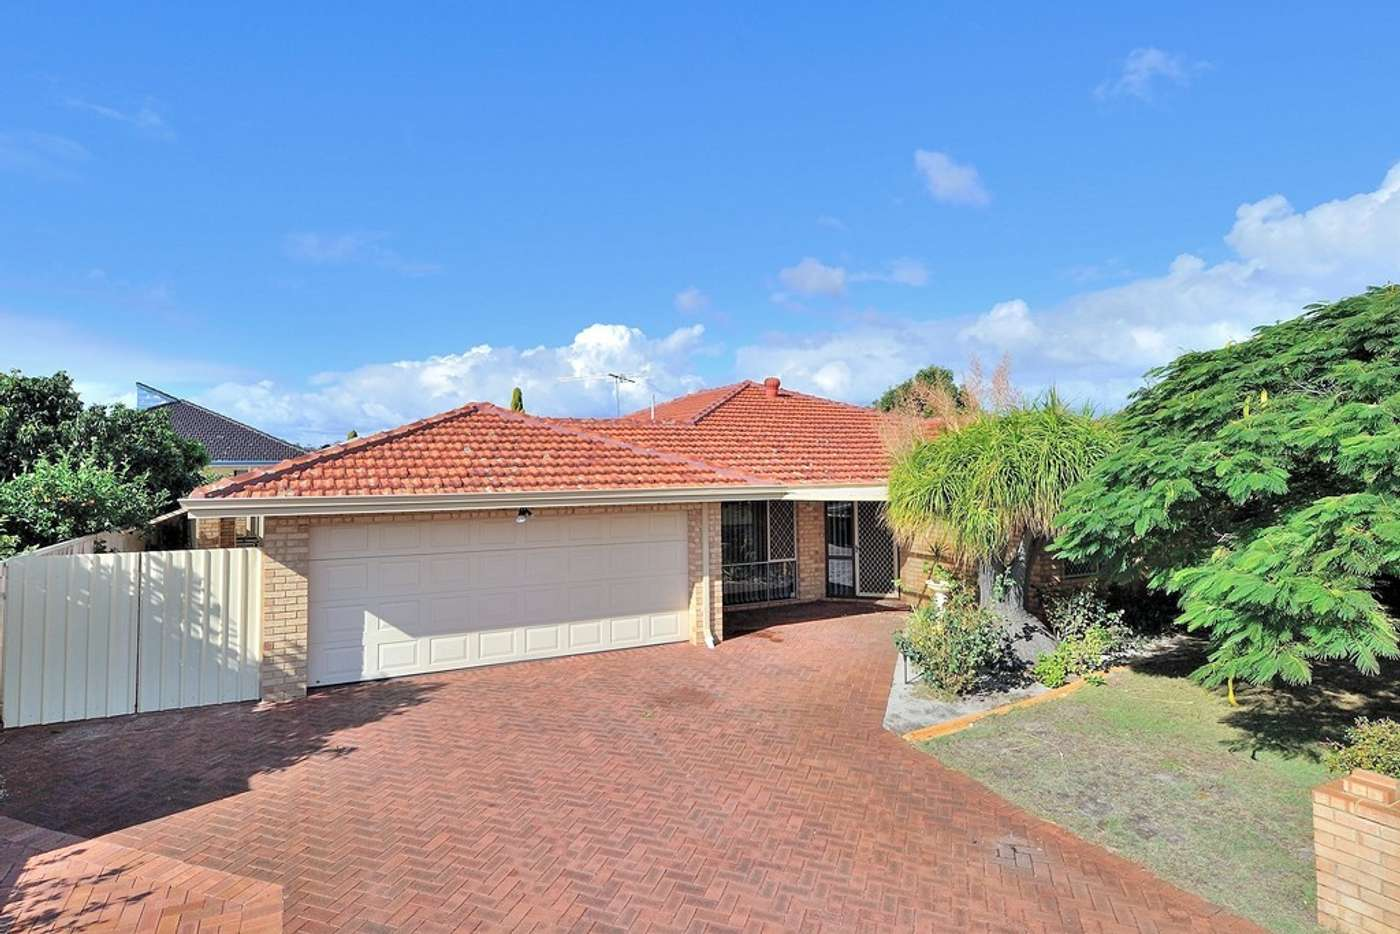 Main view of Homely house listing, 16 Seacom Ct, Morley WA 6062